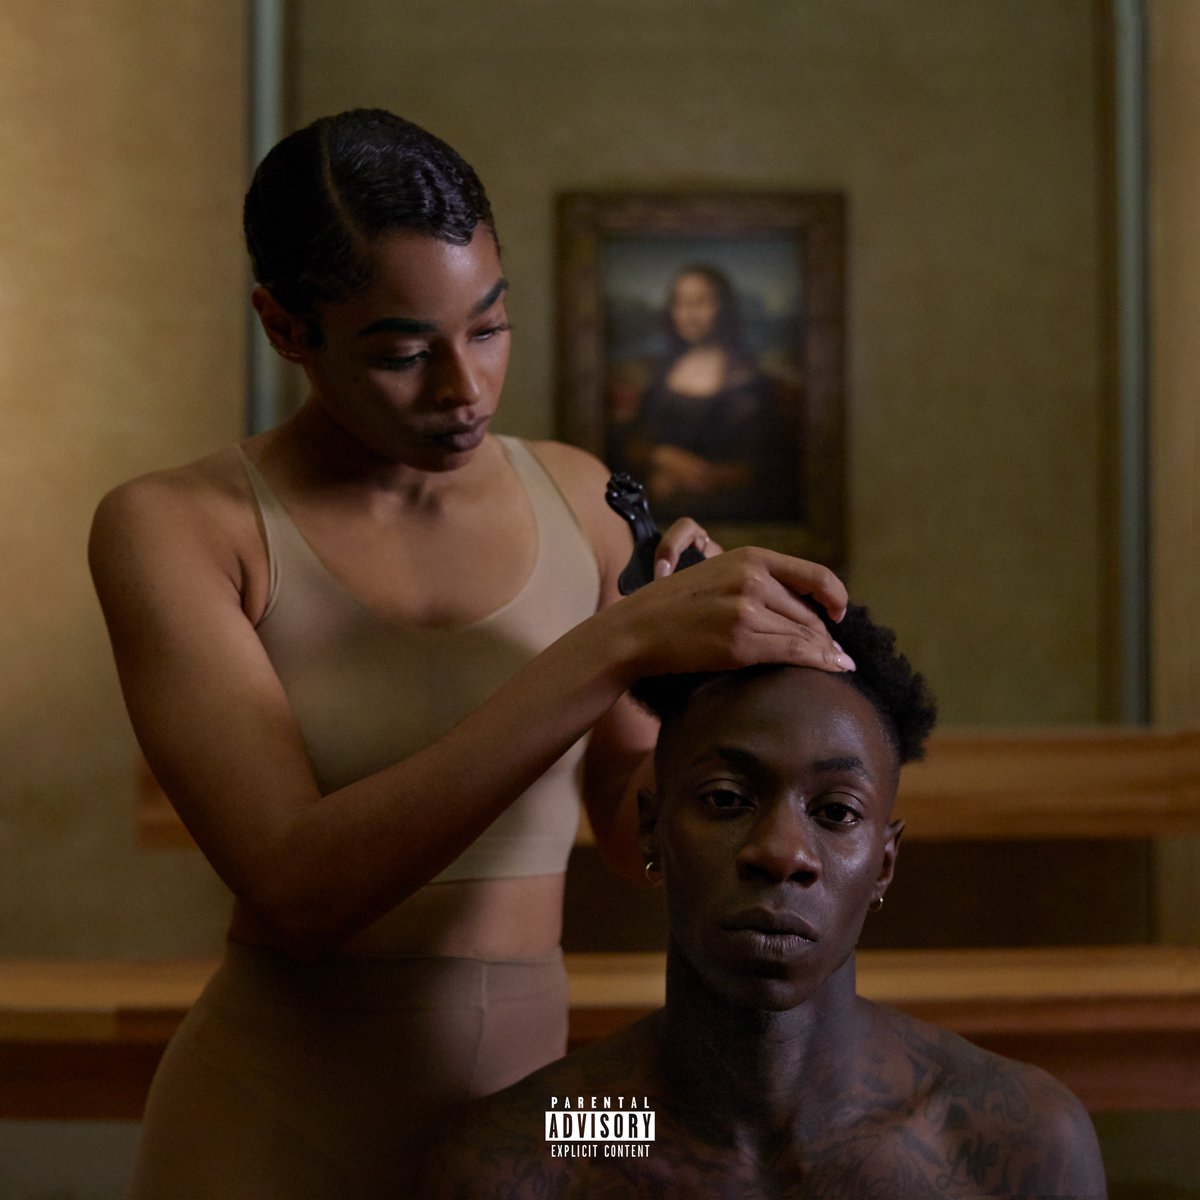 Stream #EverythingIsLove now, exclusively on TIDAL. Also stream a TIDAL-exclusive track. https://t.co/OHRZ7lnF8n https://t.co/70xd4Box4P